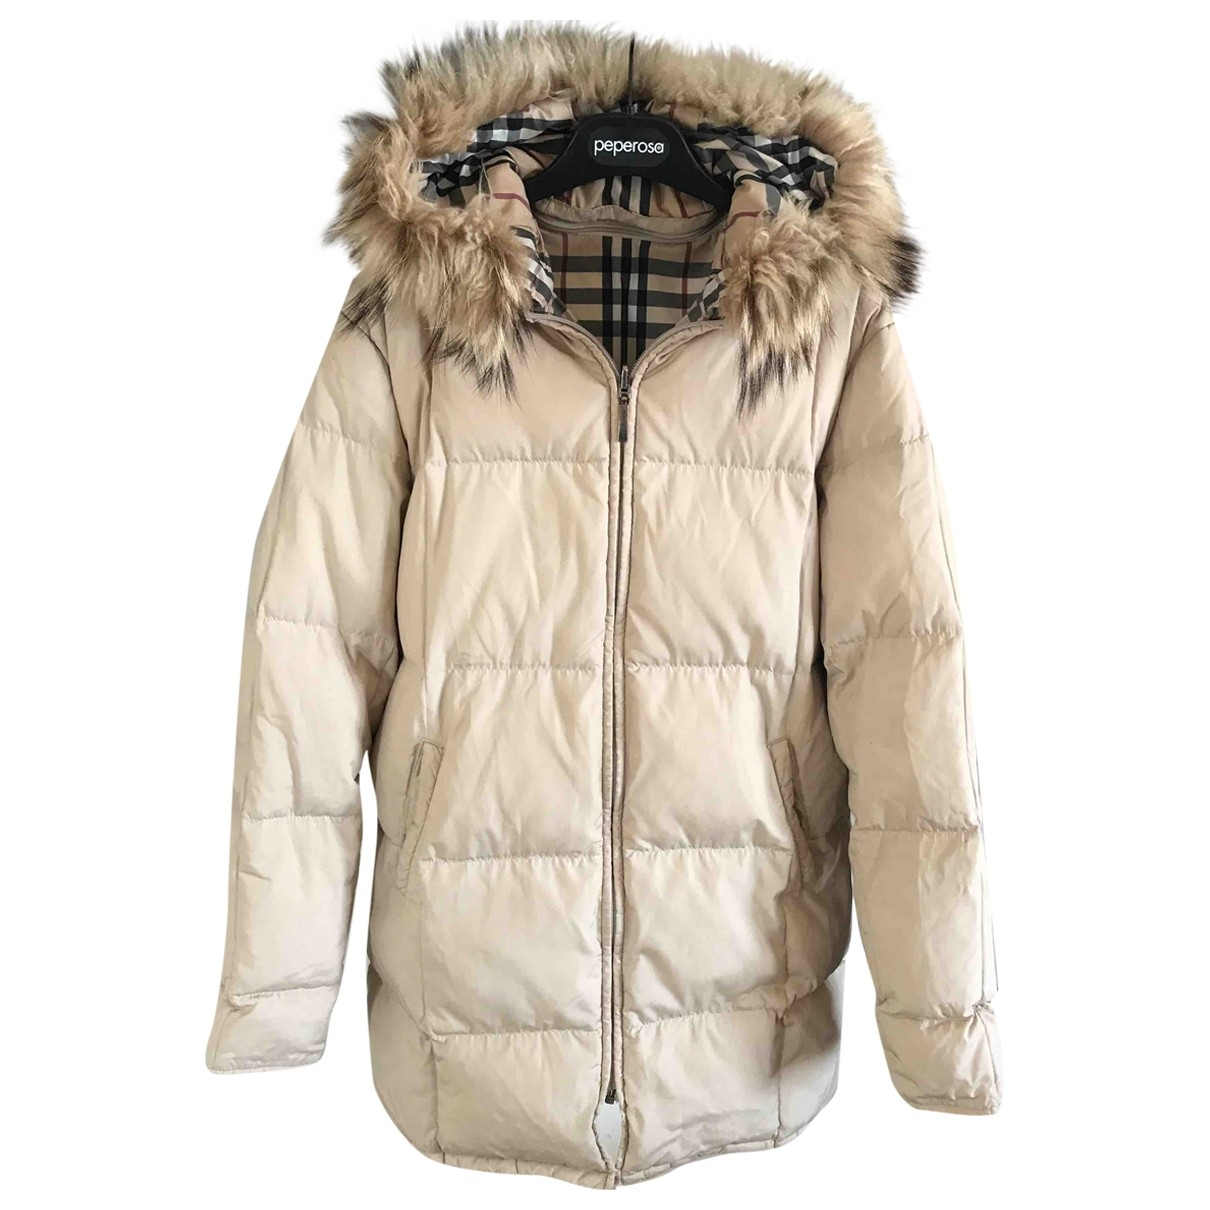 Burberry \N Beige jacket for Women 42 IT